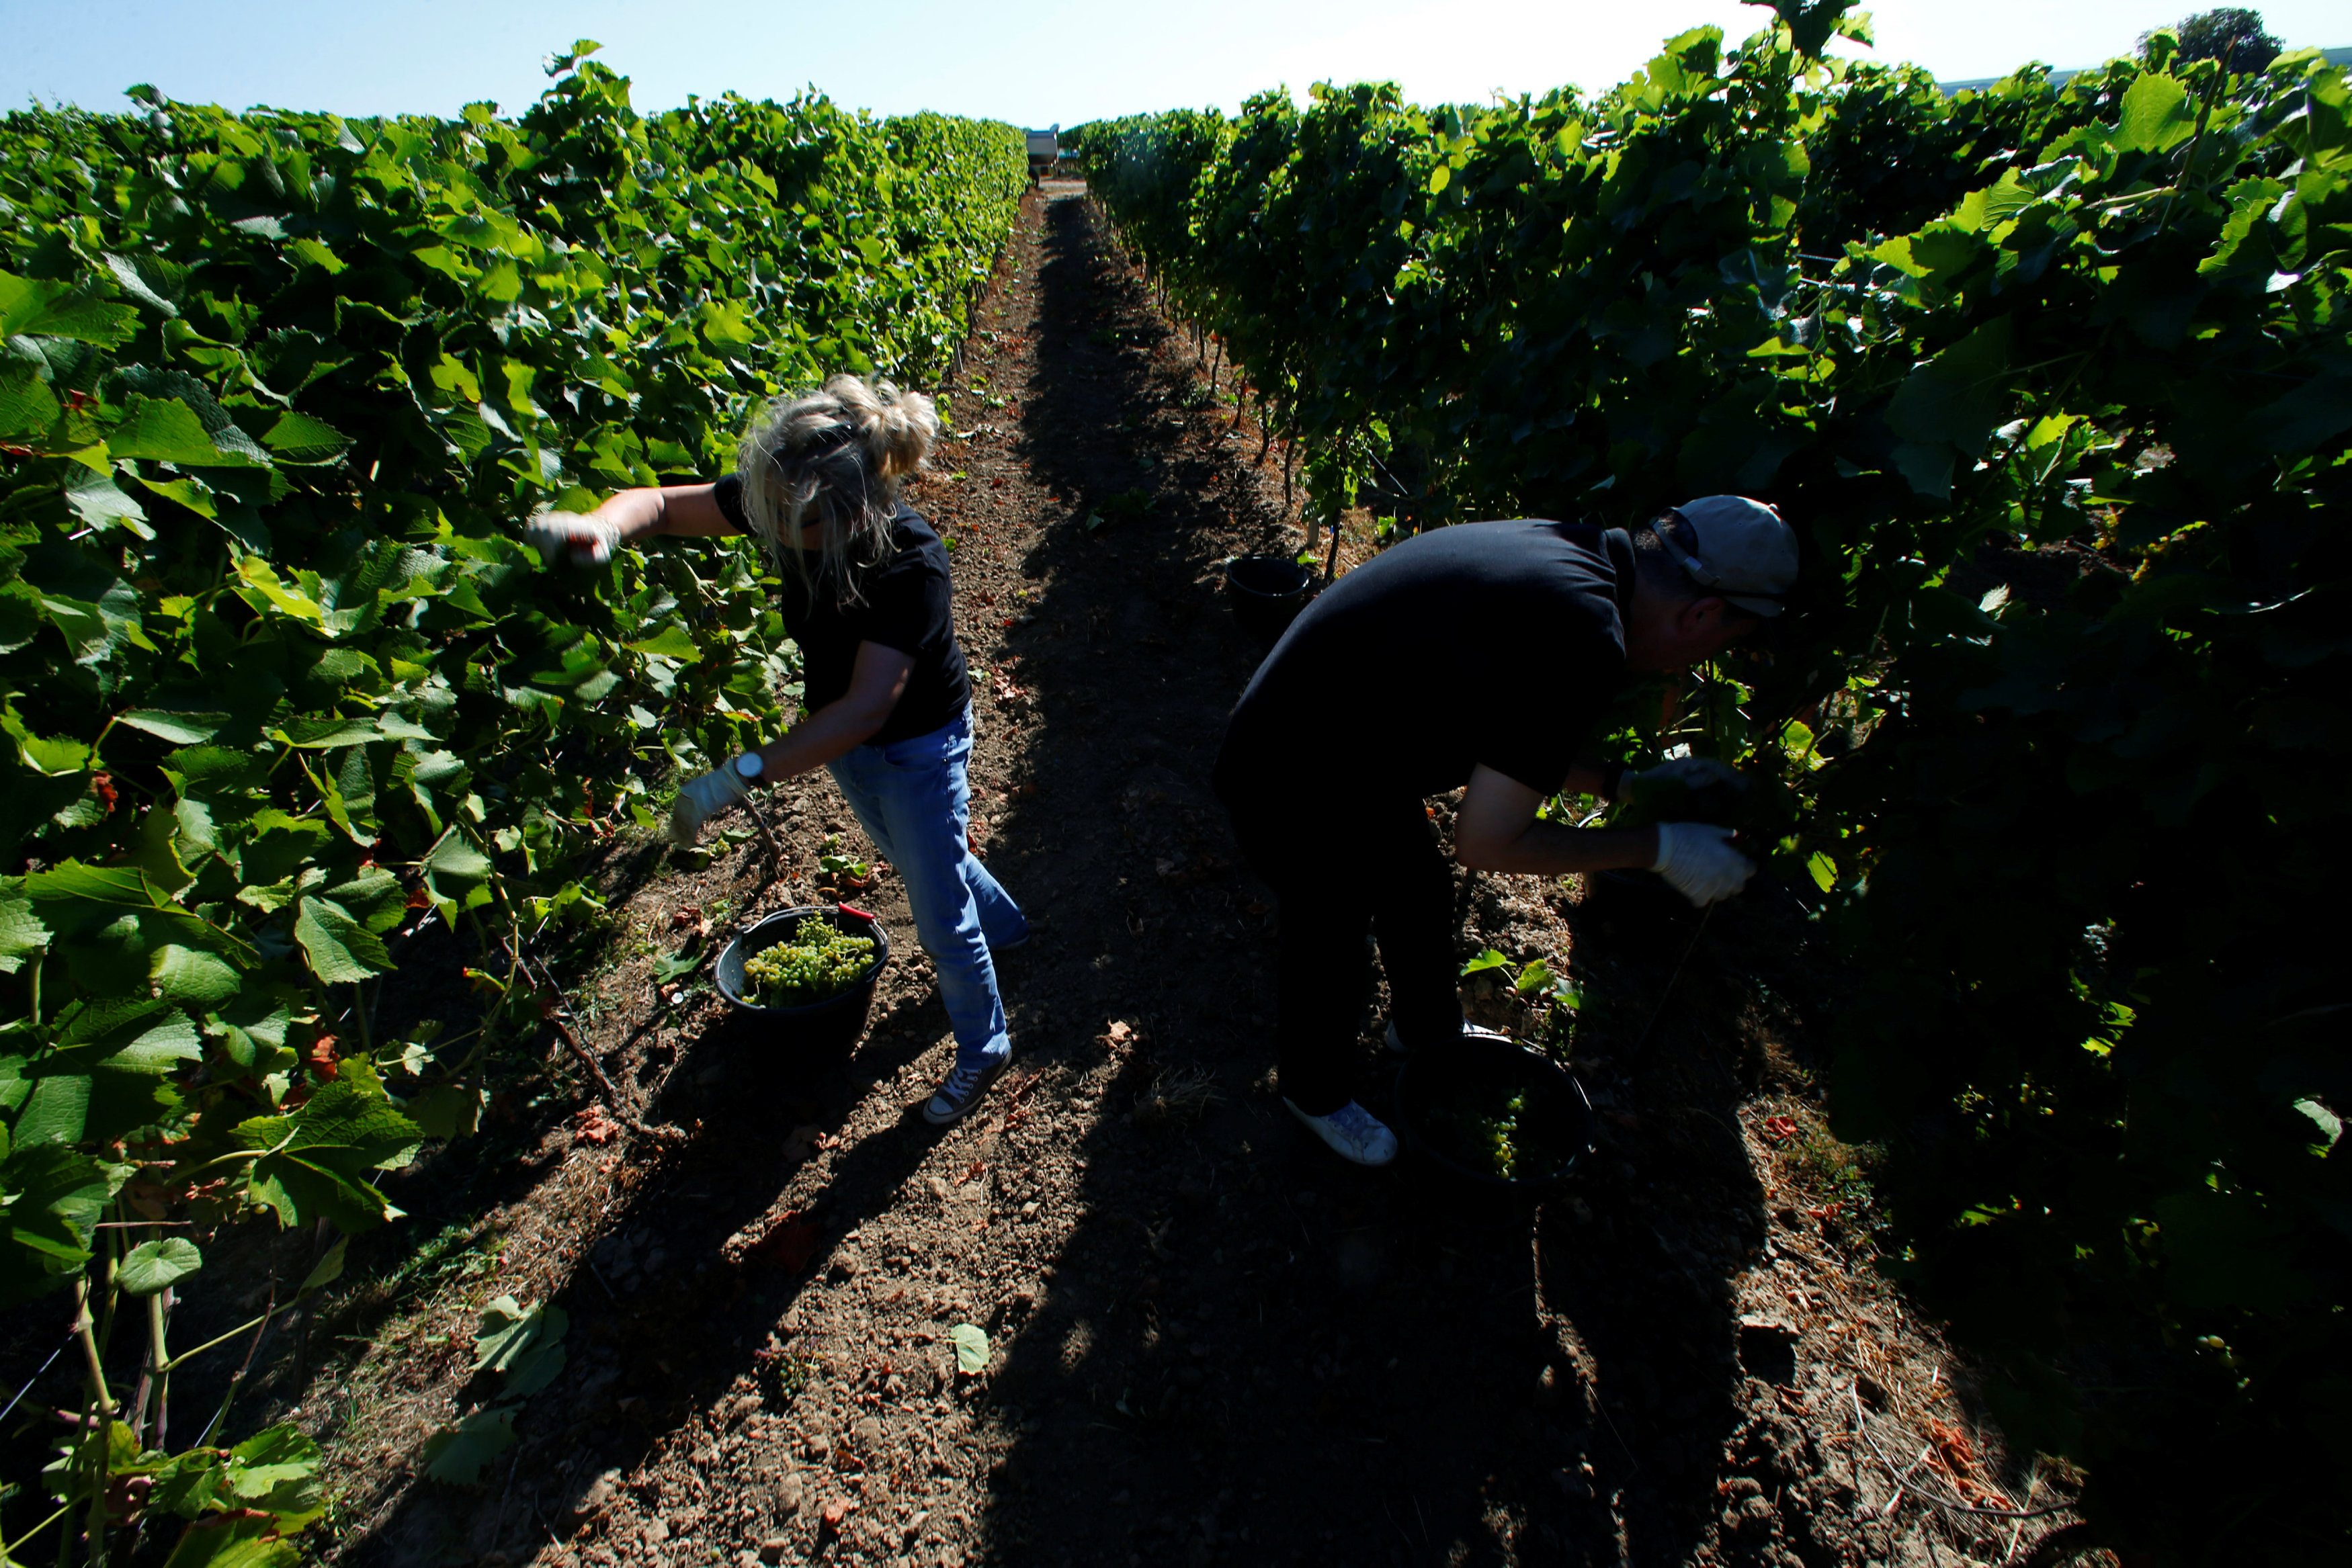 Employees of the vineyard M.R. Mathias Wolf harvest grapes in Loerzweiler